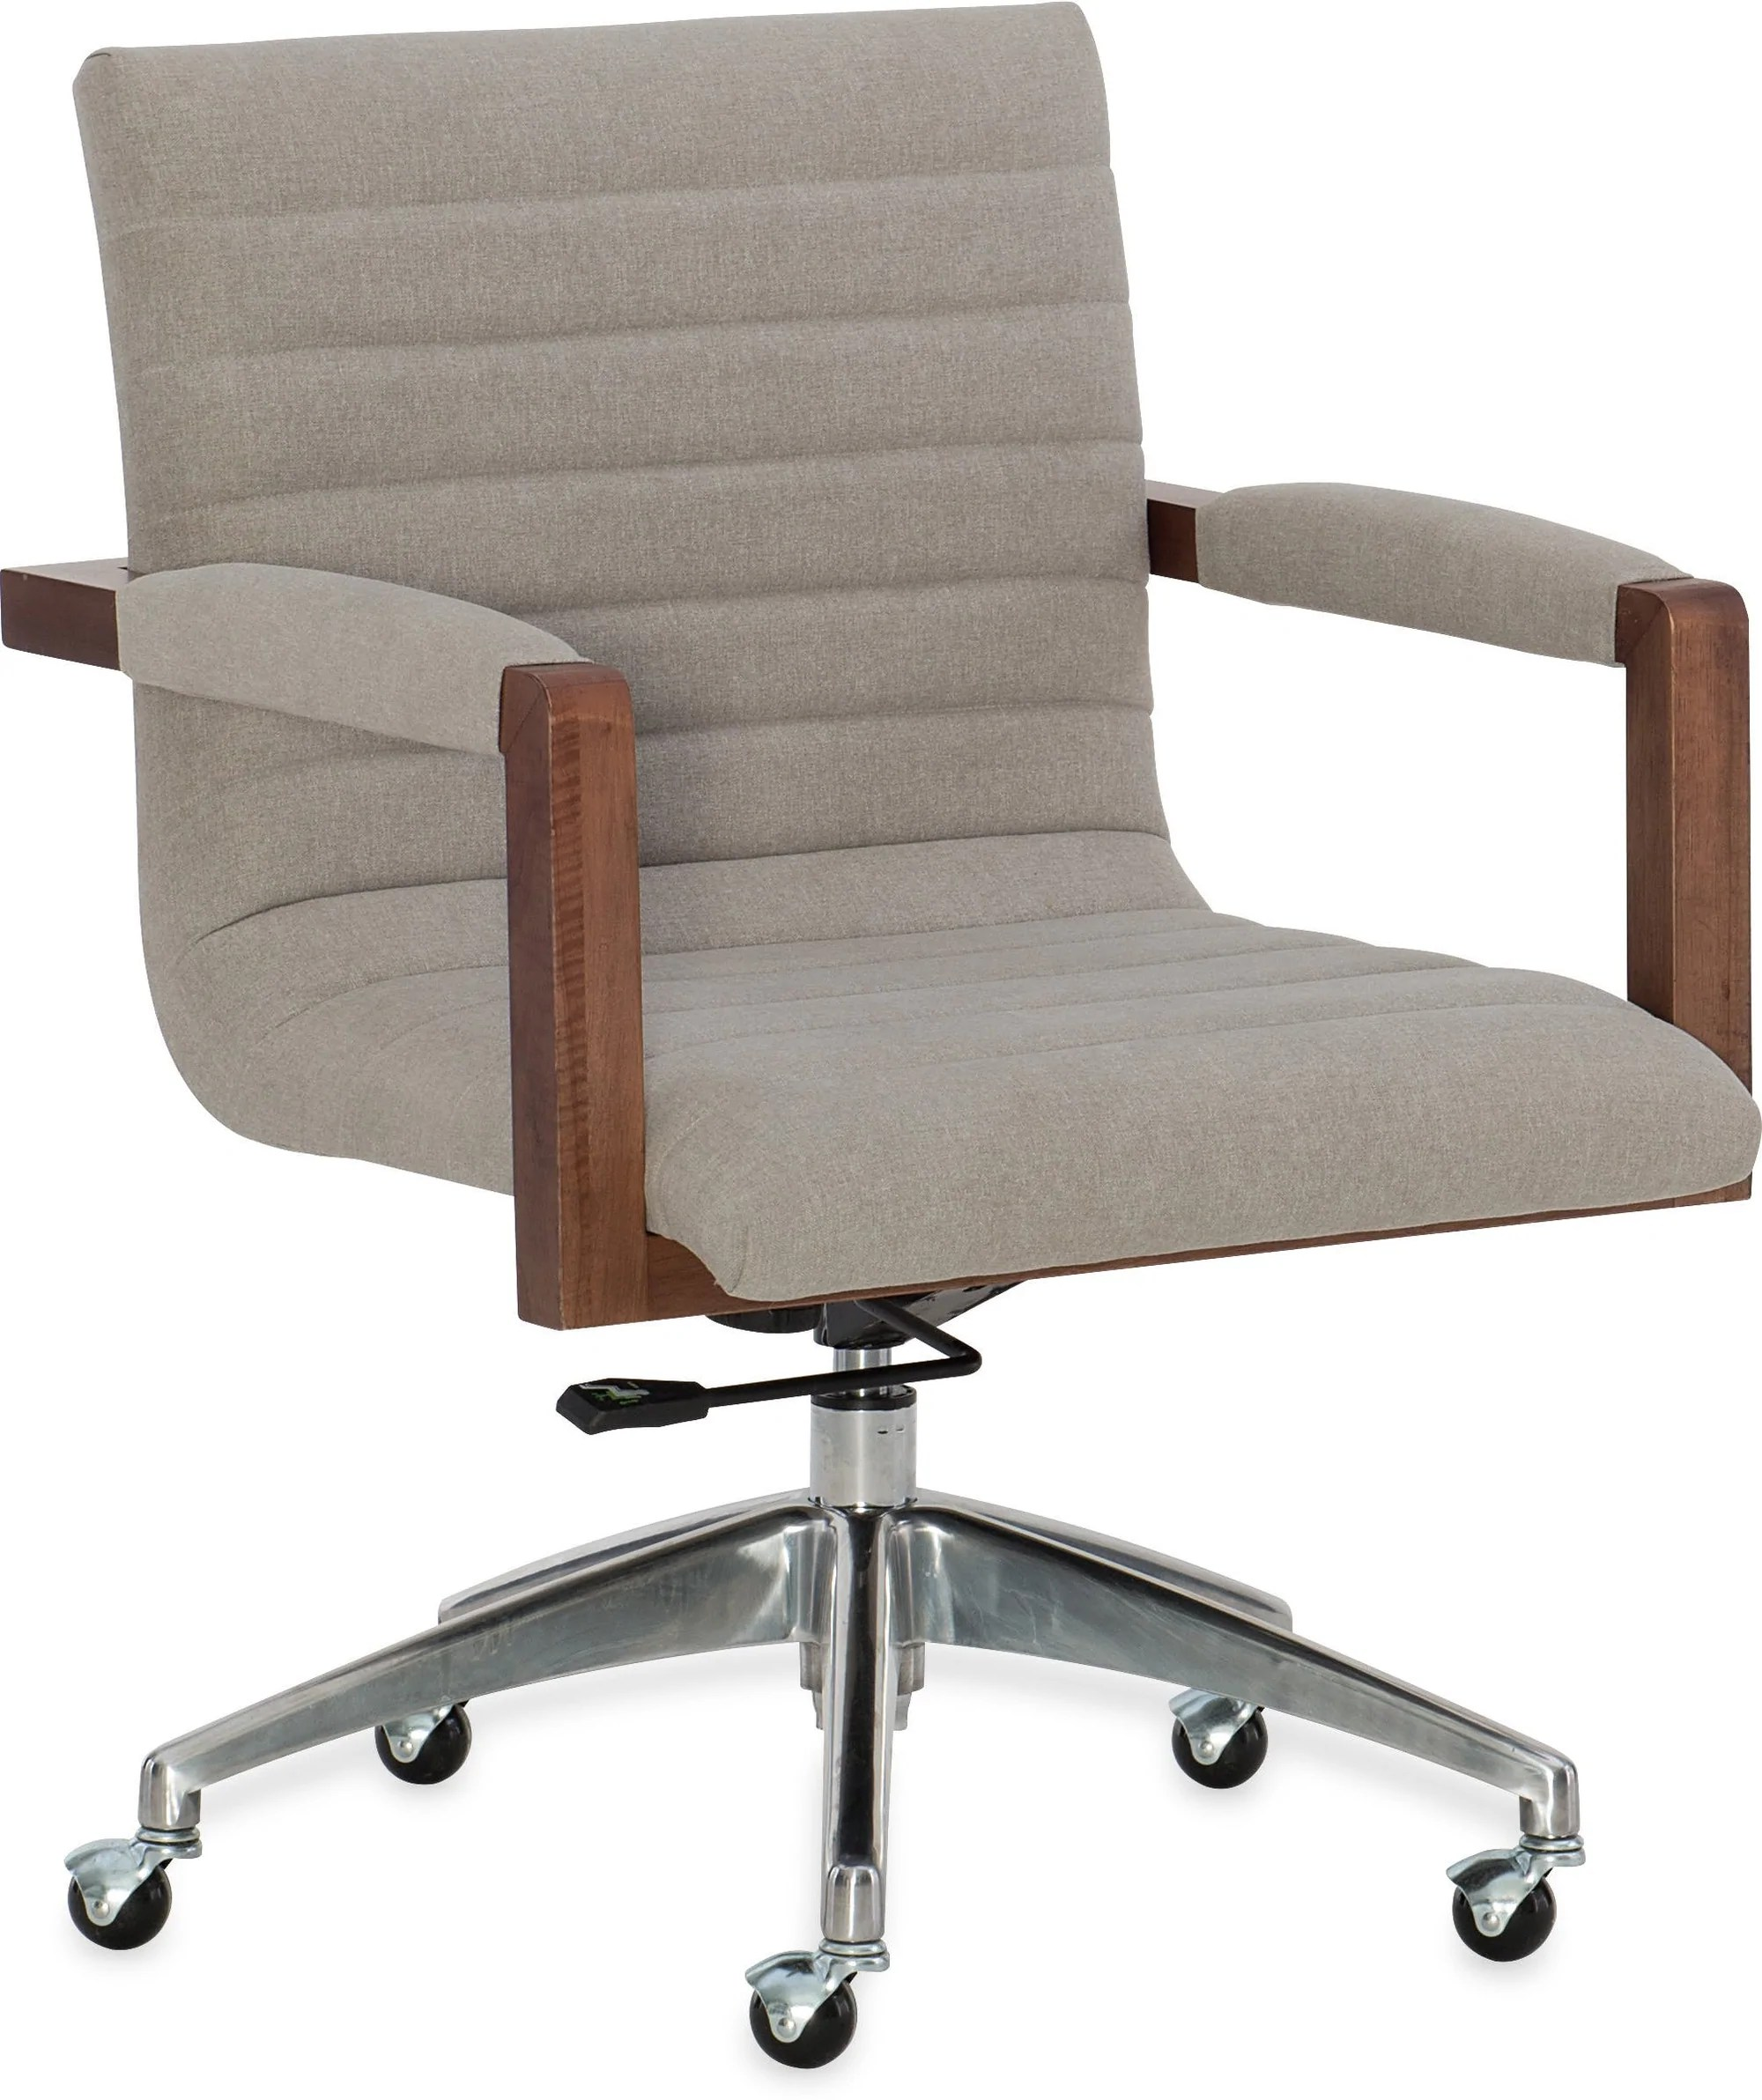 Home Office Desk Chairs Hooker Furniture Transitional 1650 30220 Mwd Home Office Desk Chair